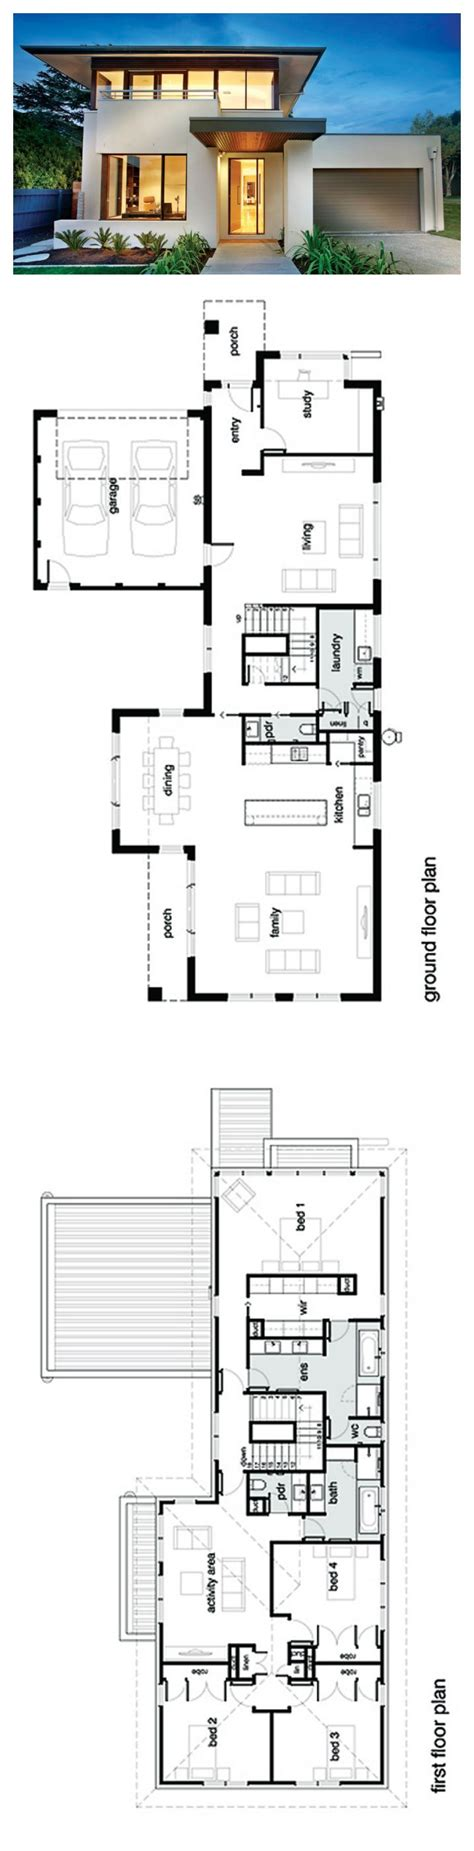 contemporary floor plans the 25 best ideas about modern house plans on modern house floor plans modern